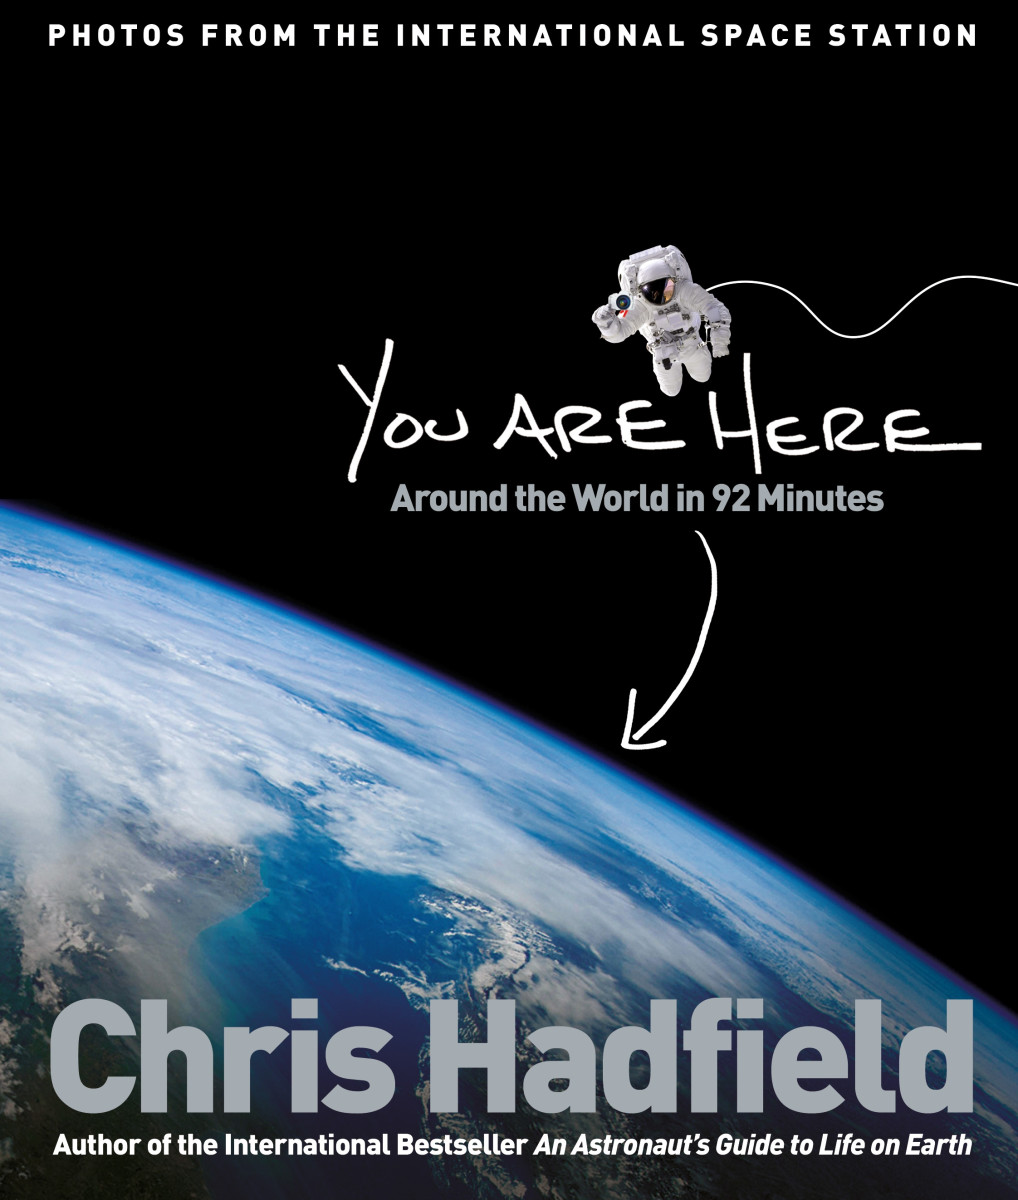 Chris Hadfield Book Photo